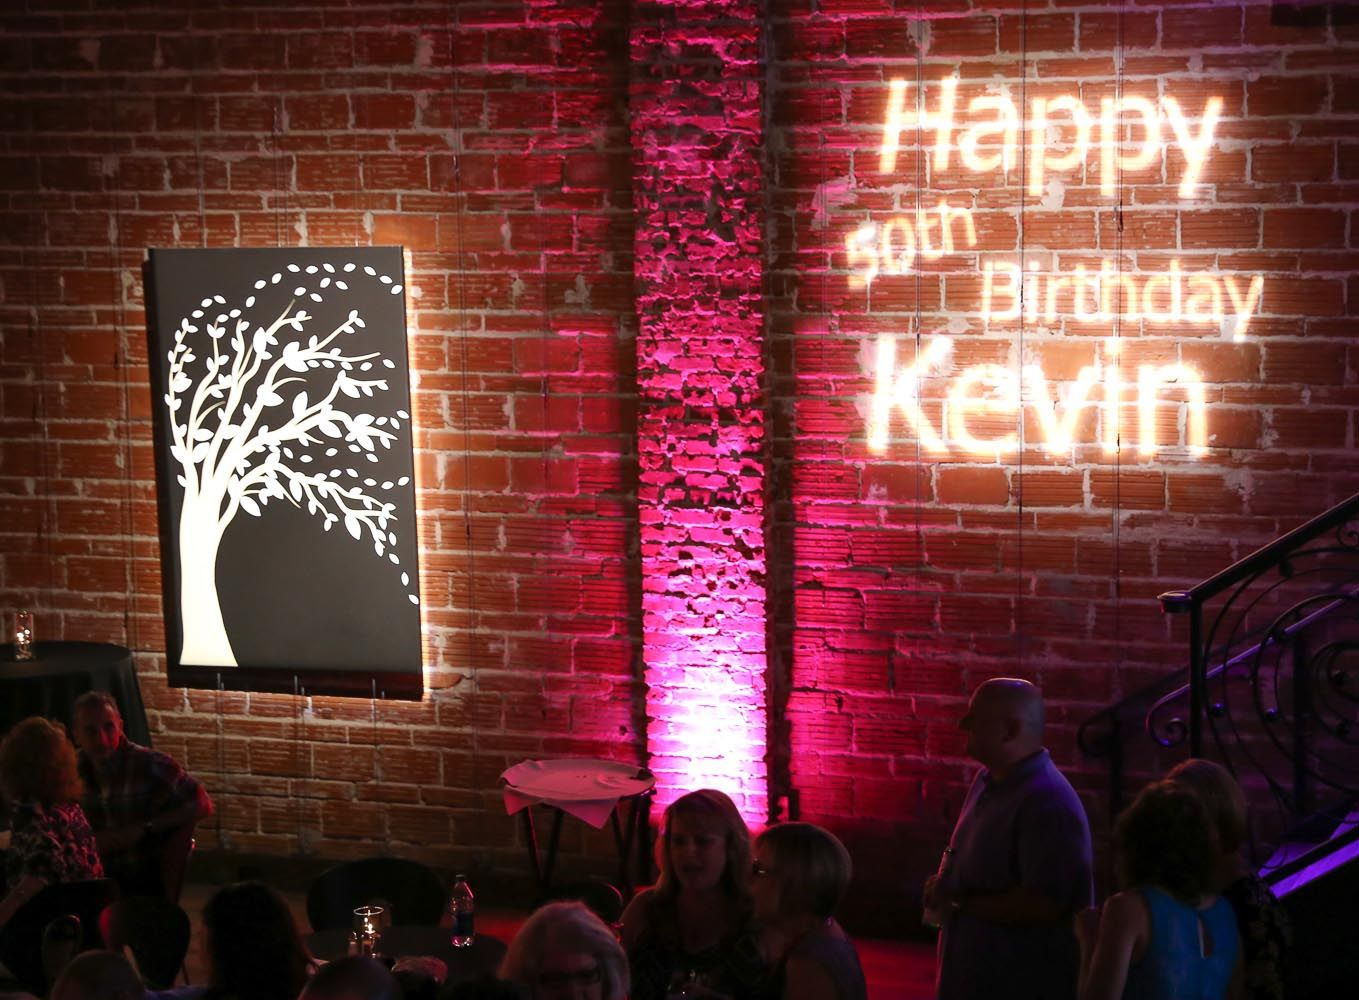 2014-05-31-Kevin-50th-Birthday-at-NOVA-535-St-Pete